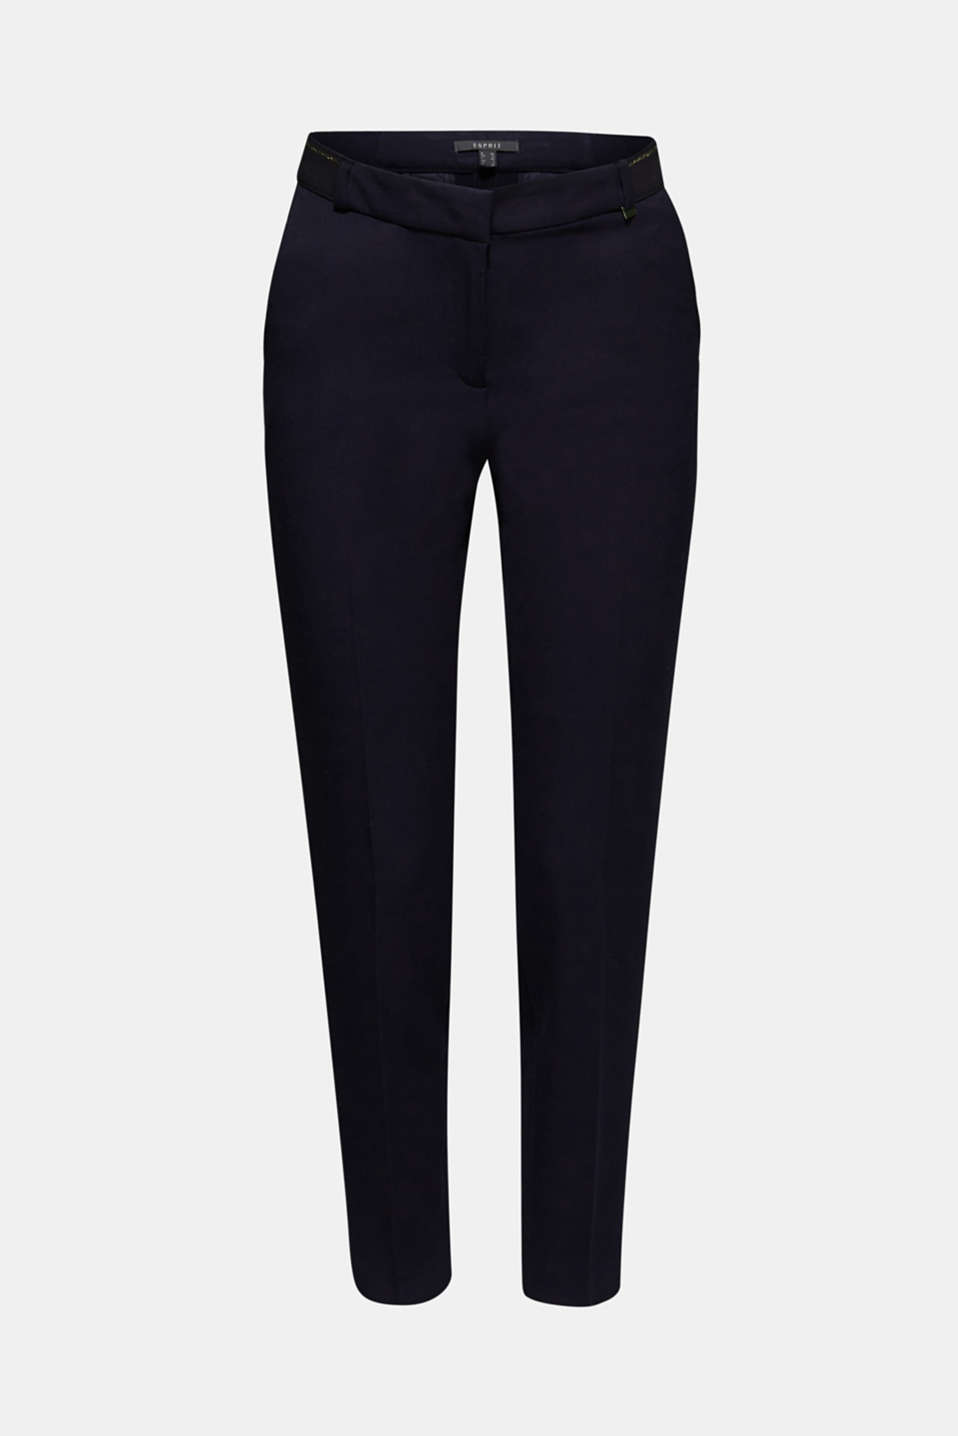 Stretch trousers with a glittery waistband, NAVY, detail image number 6